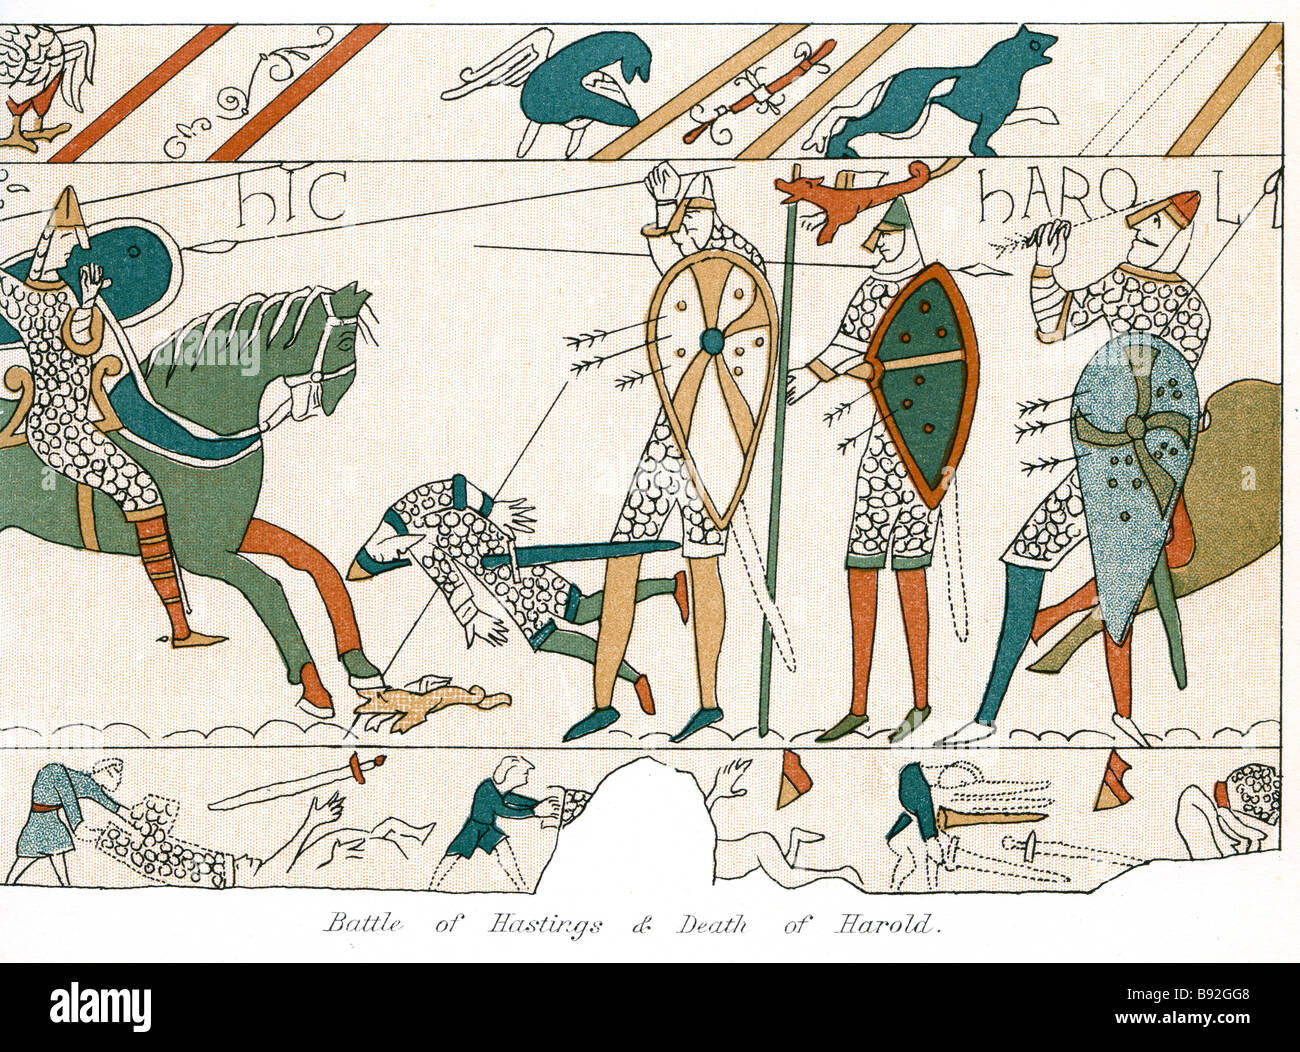 Battle Of Hasting S And Death Of Harold The Bayeux Tapestry French